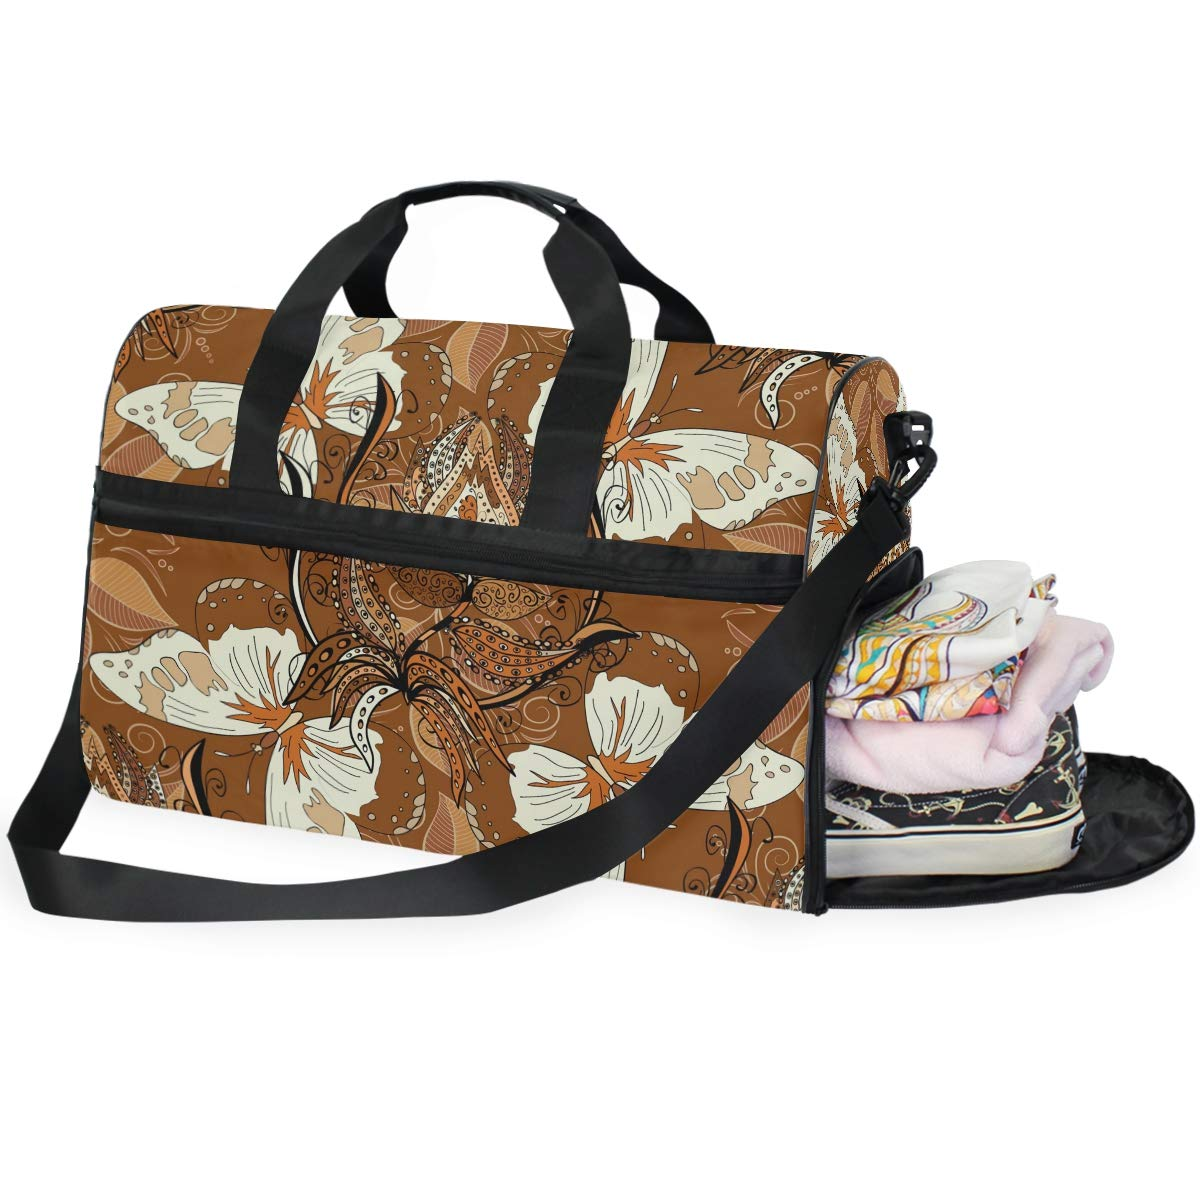 Vacation Gym Travel Duffel Bag Butterfly And Floral Waterproof Lightweight Luggage bag for Sports